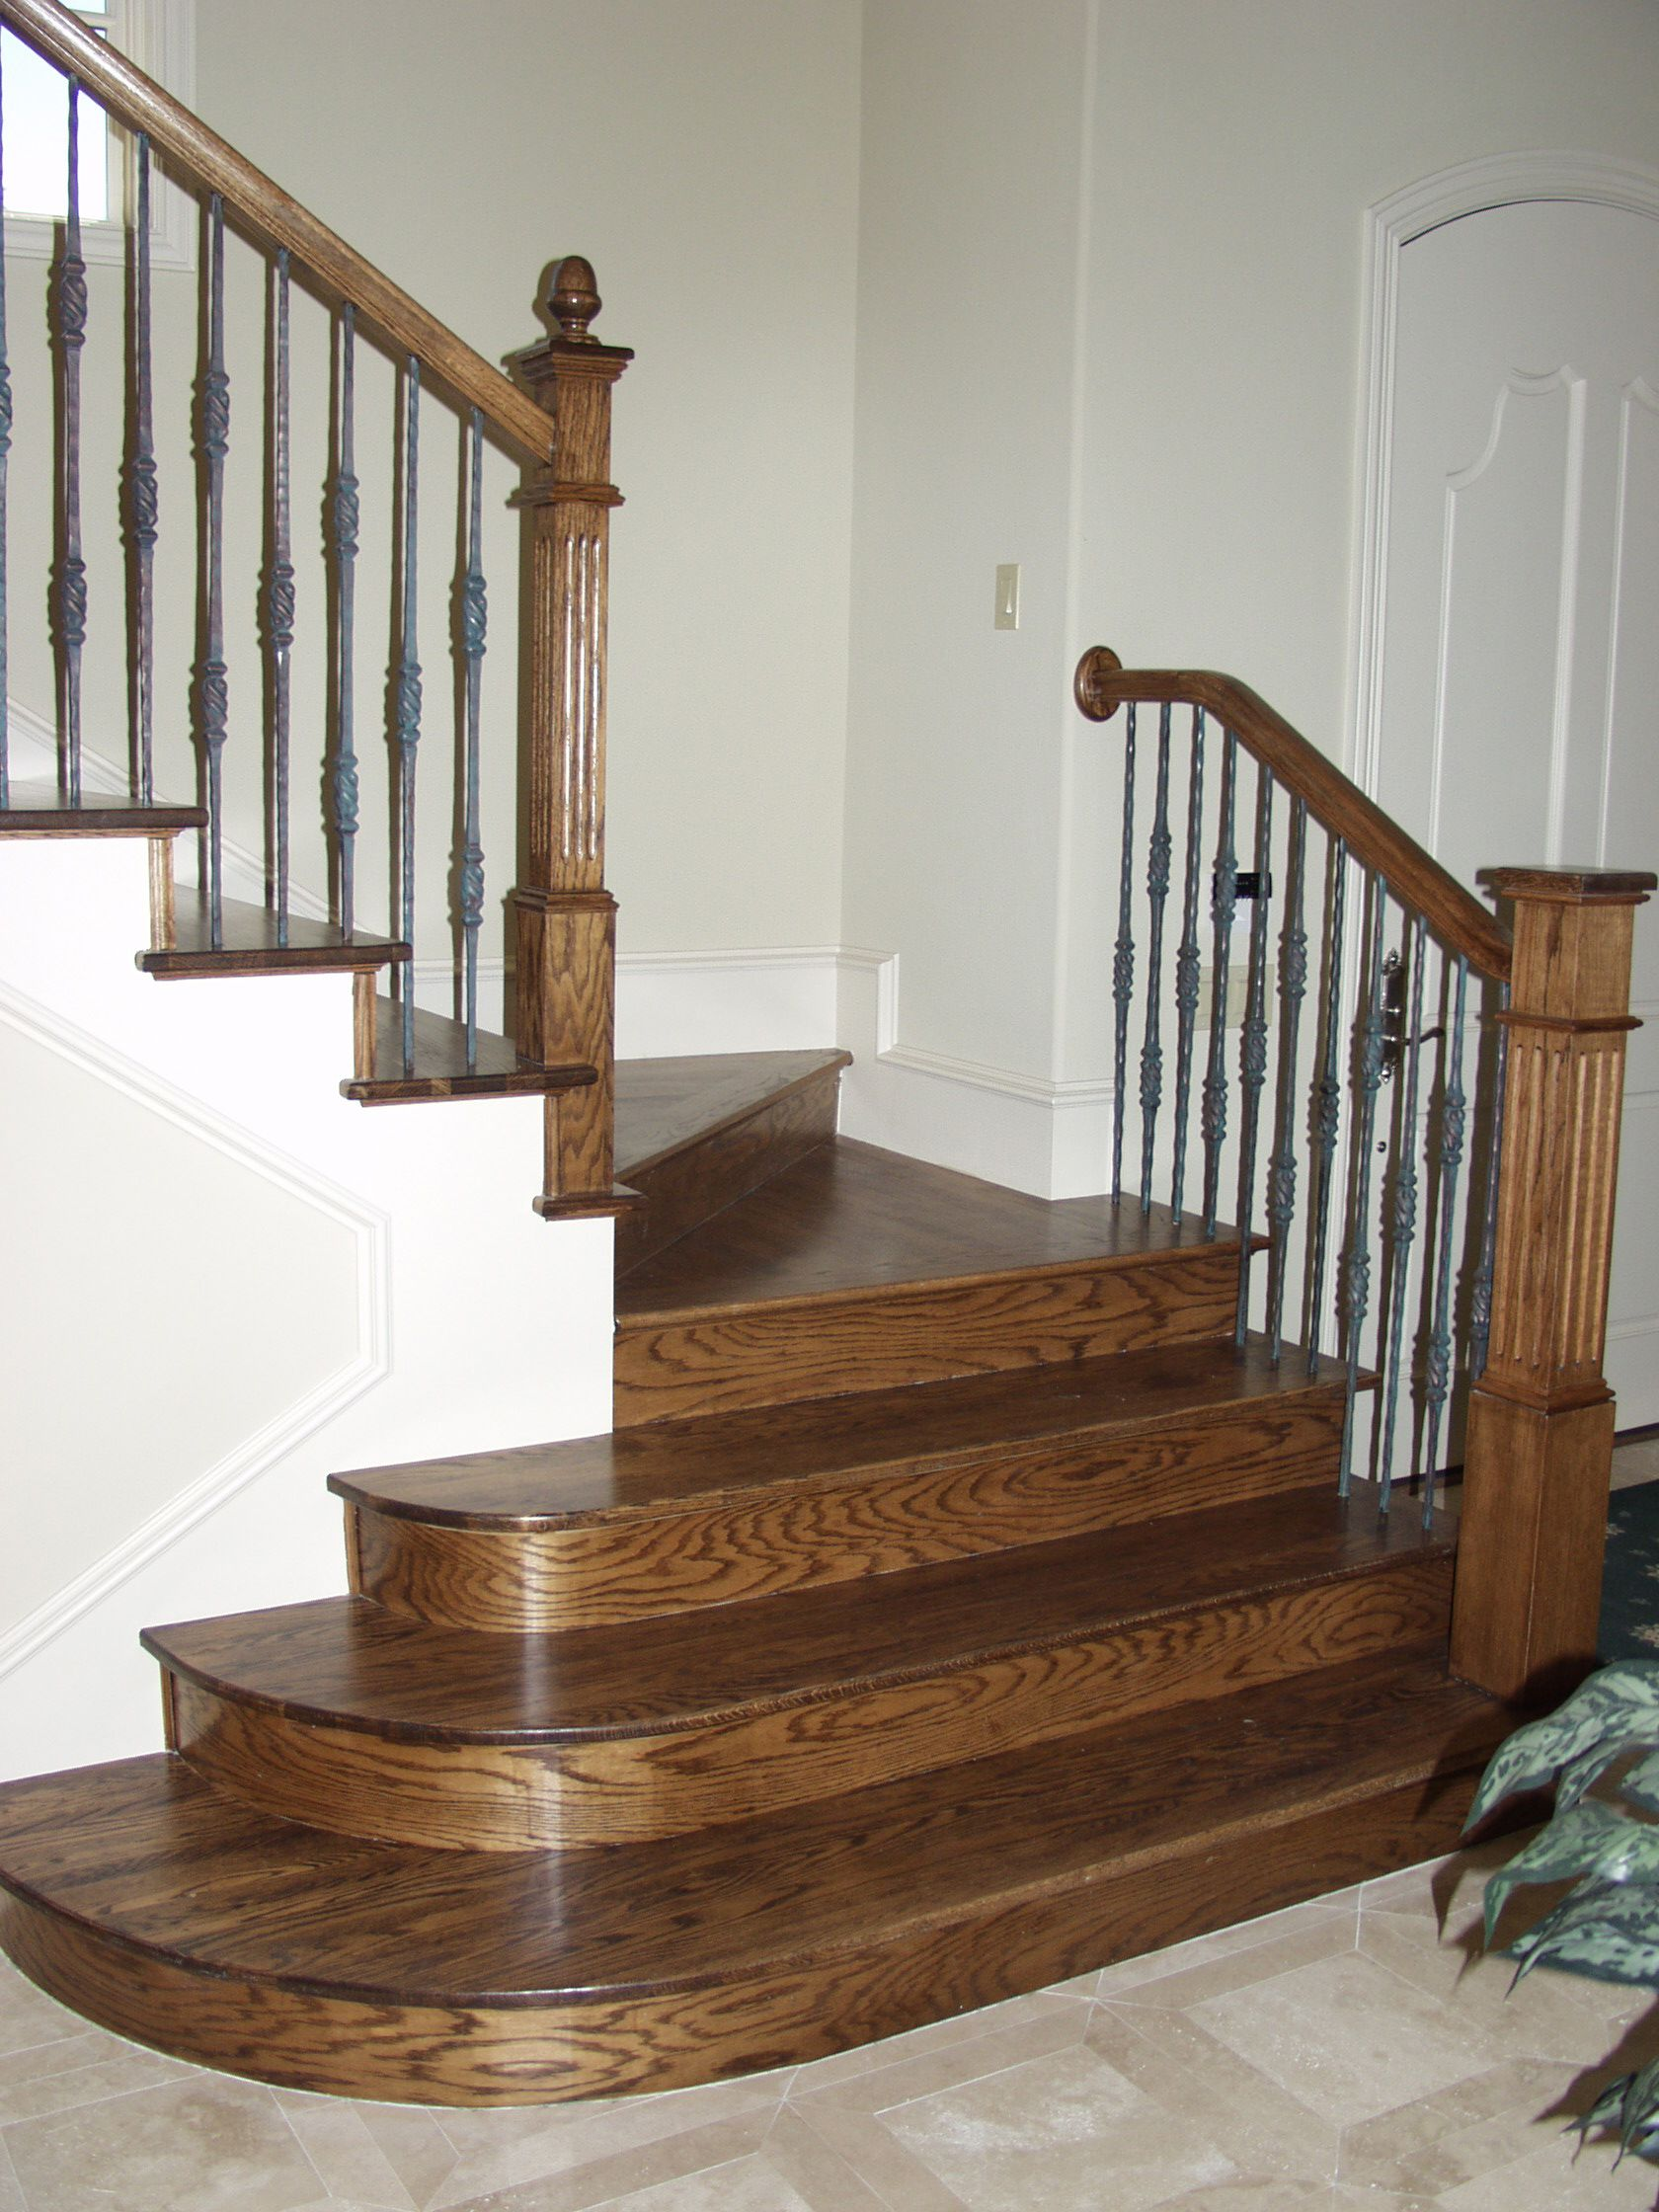 This staircase design was created using Tuscan square hammered